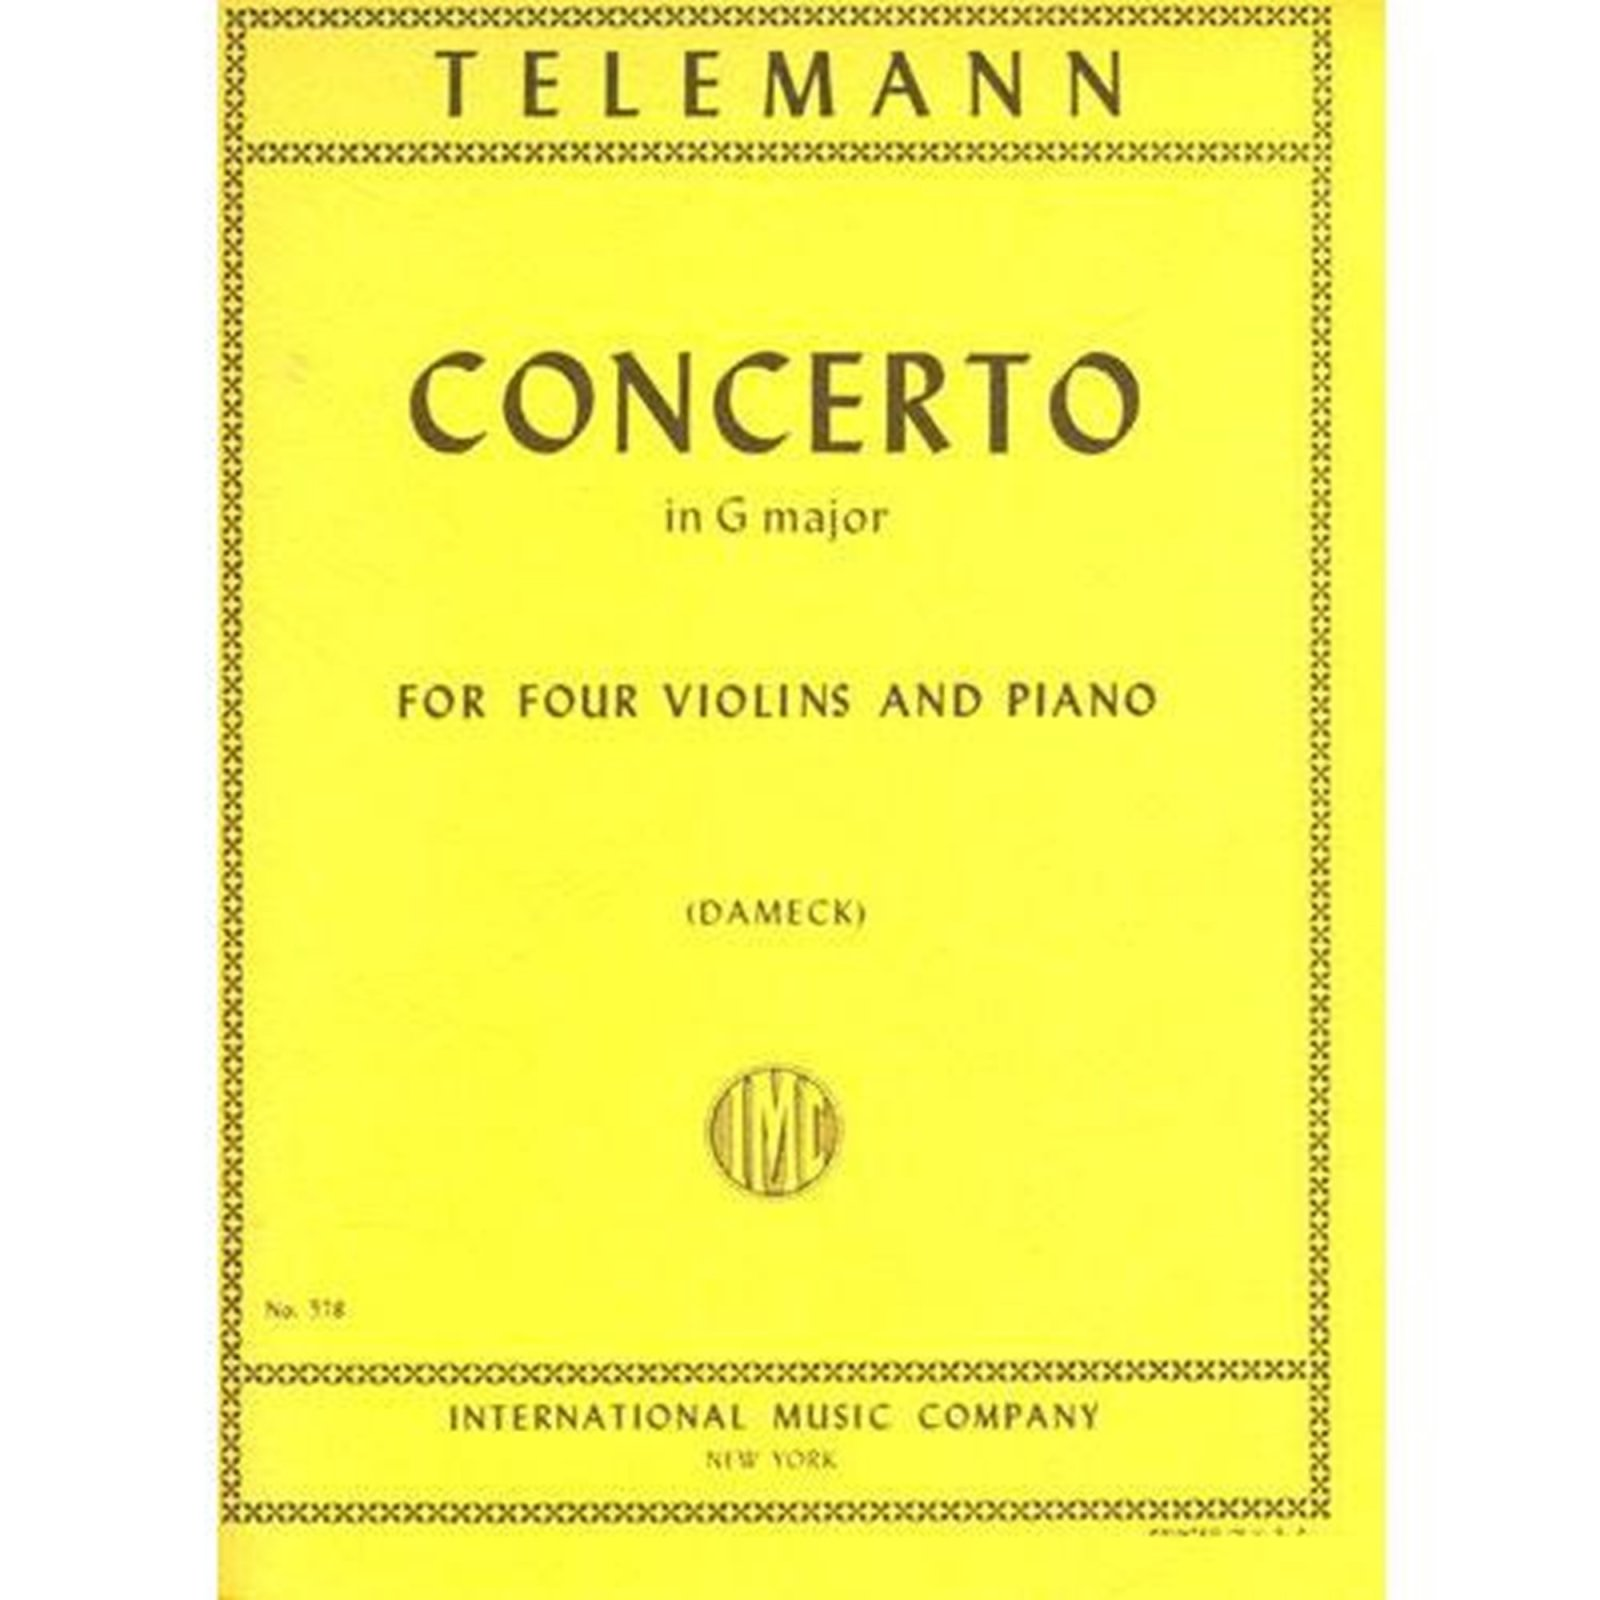 Telemann: Concerto In G major Ed. Dameck